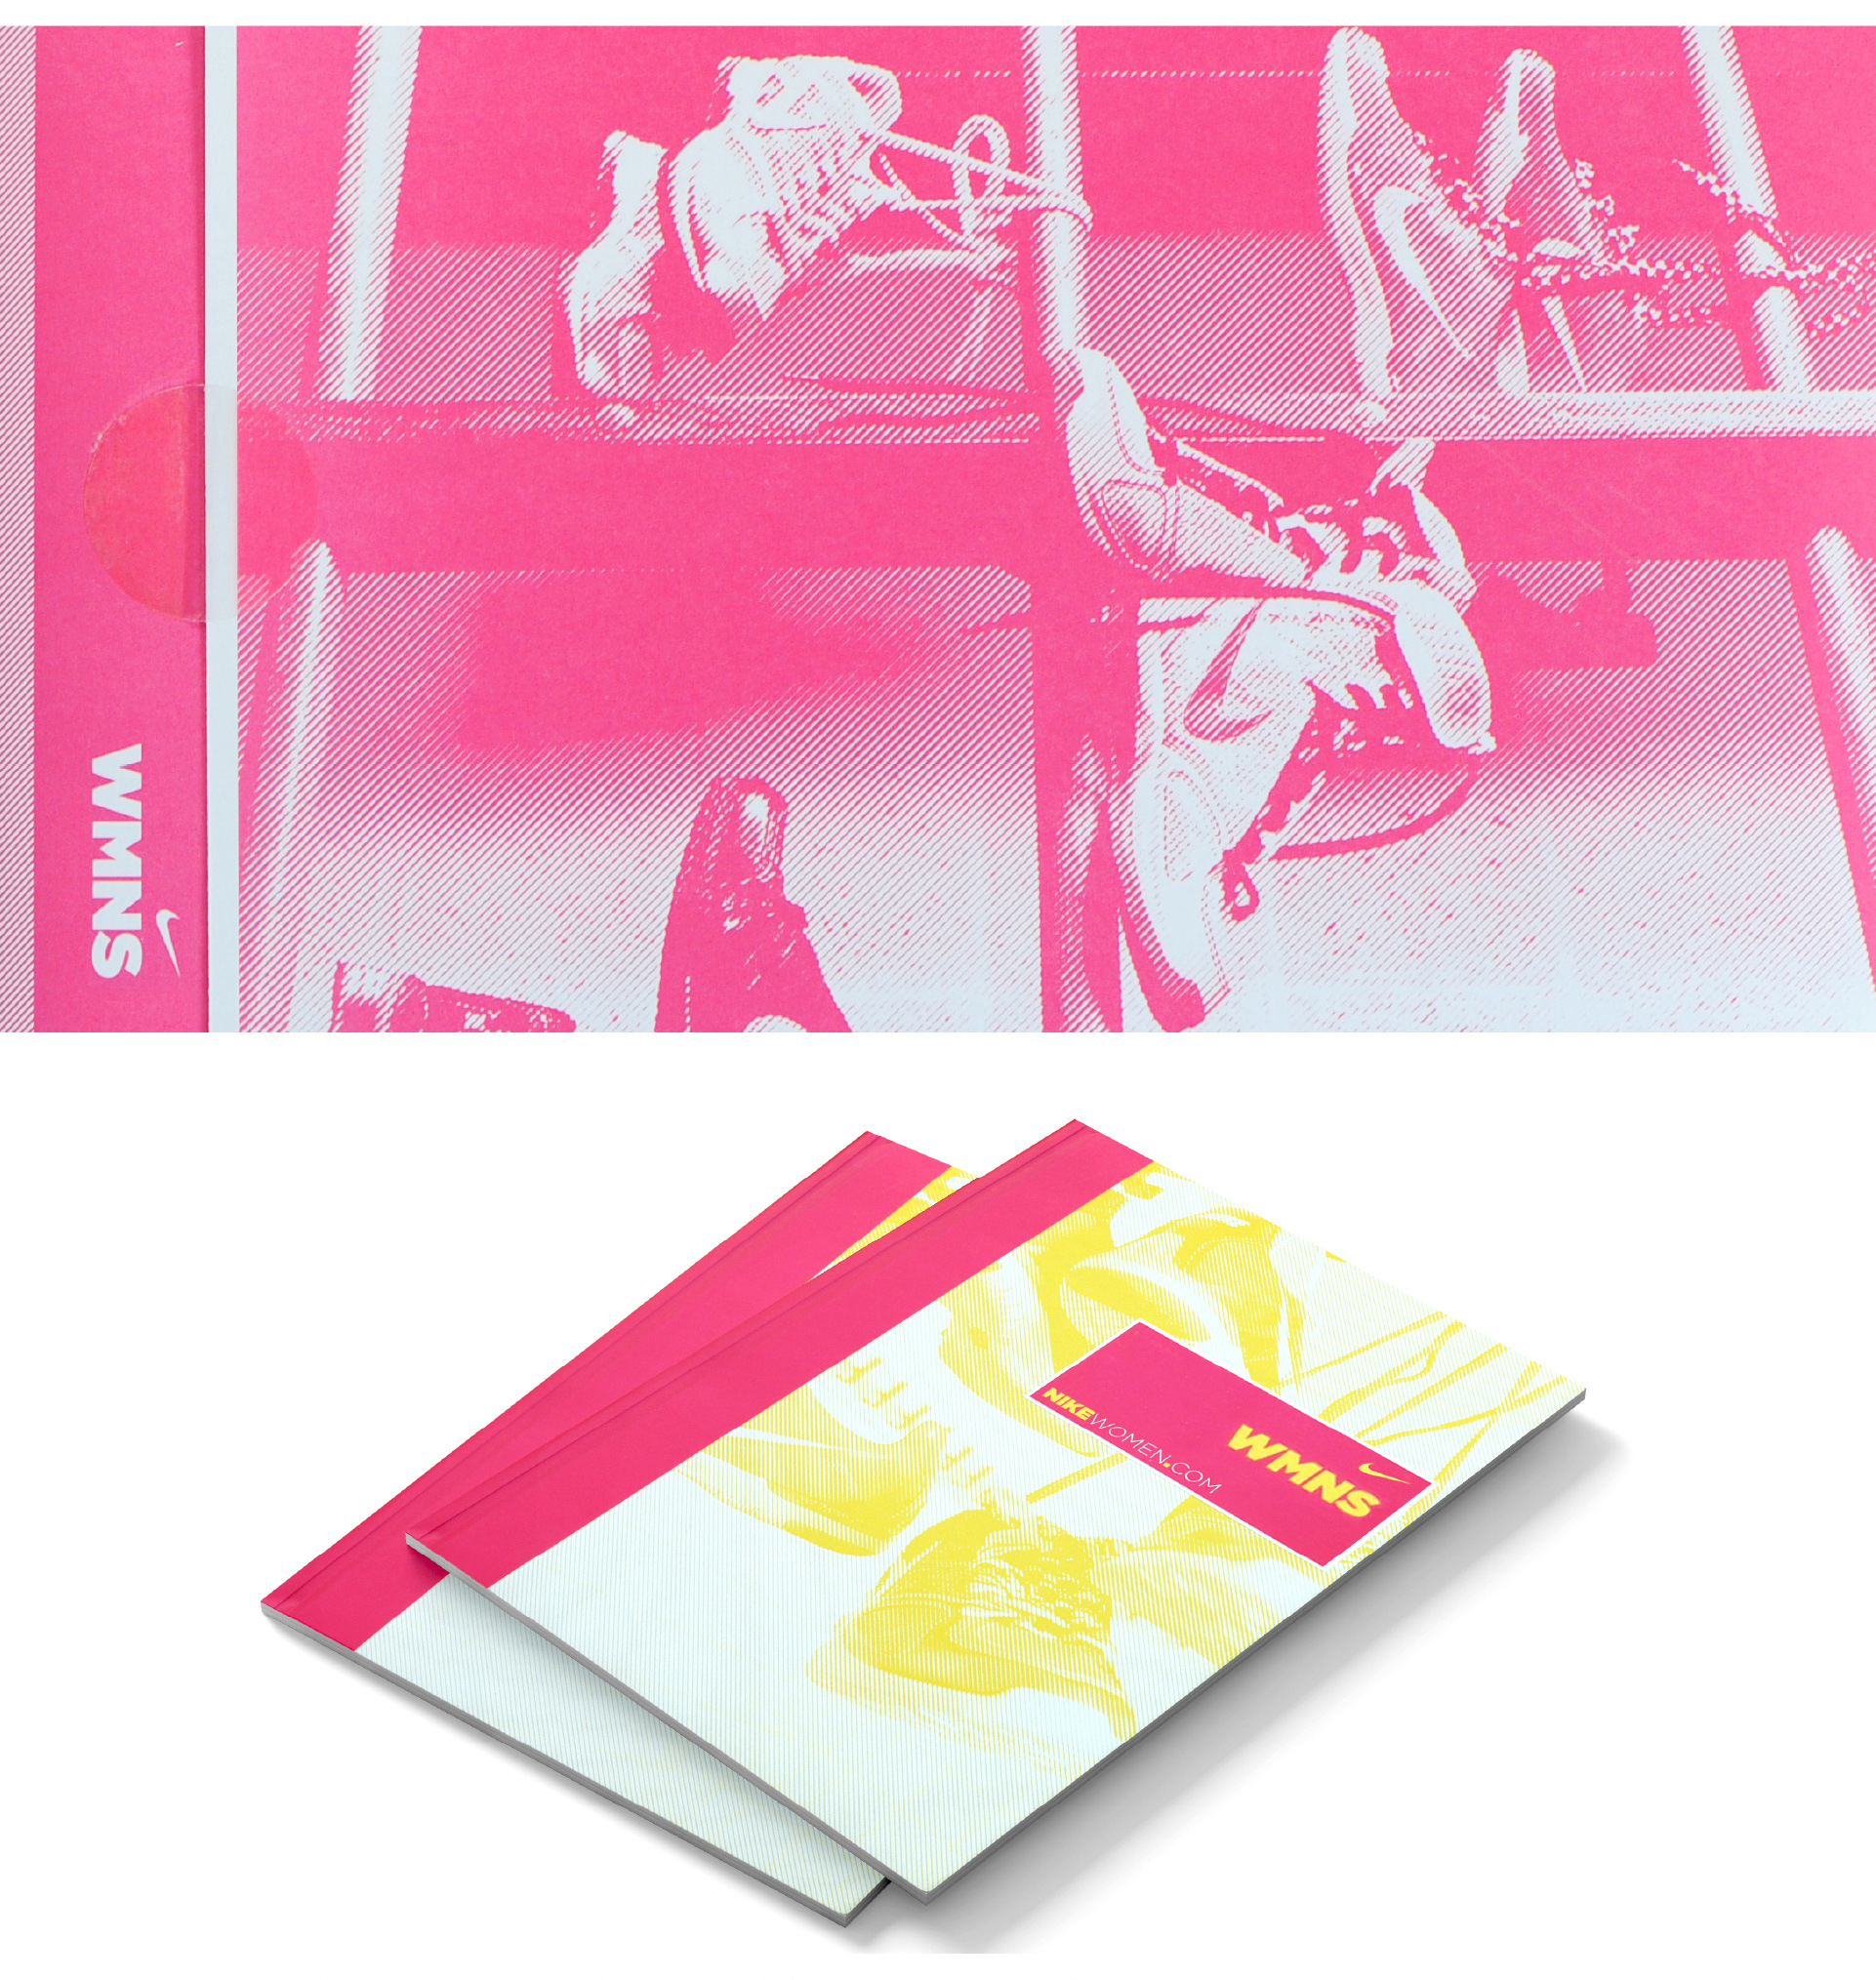 Nike_WMNS_PressKit_CoverGraphics